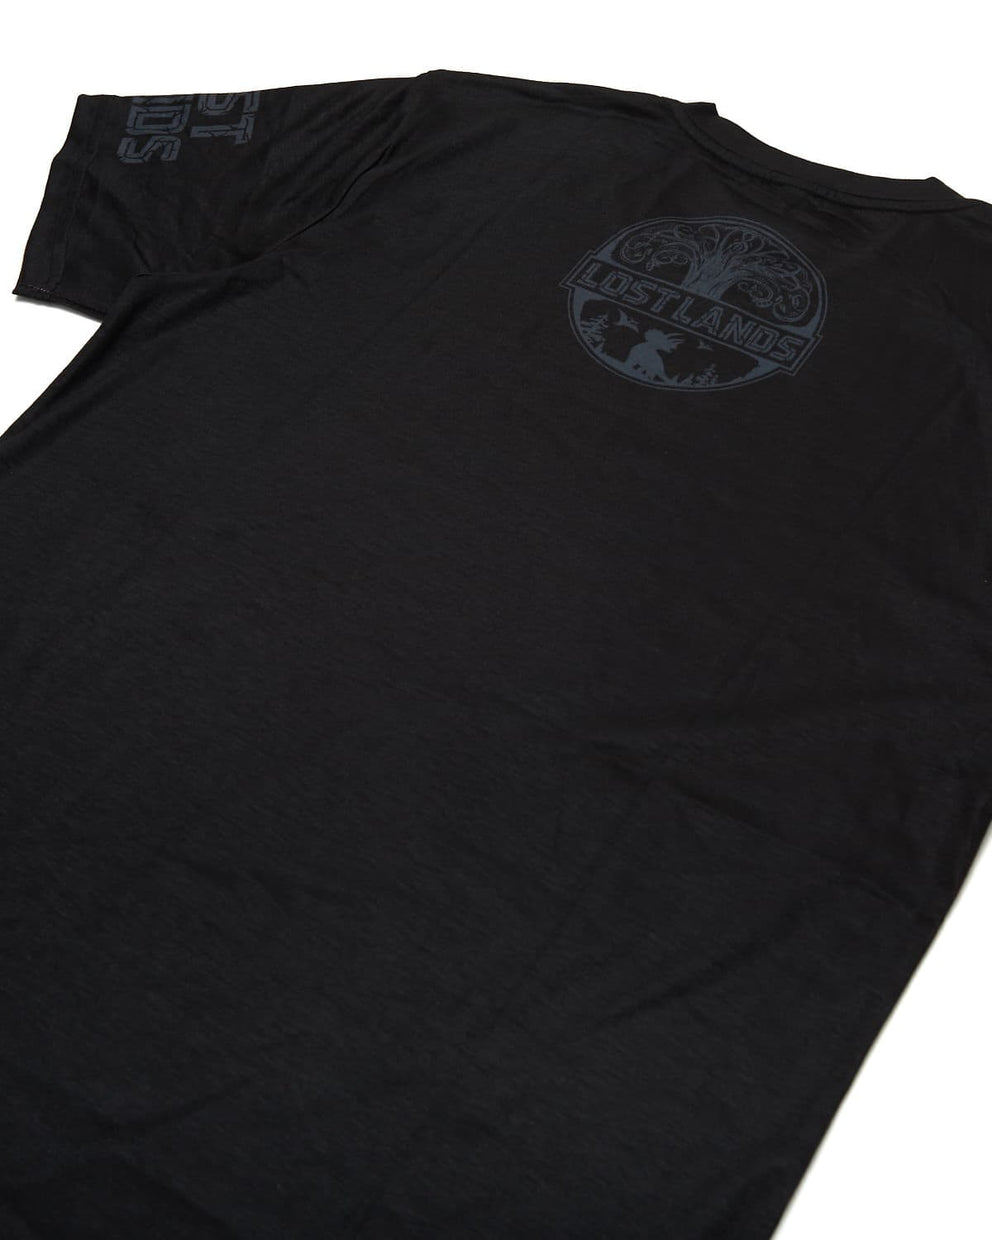 'Legends' Dye Sub Tee - Black/Grey